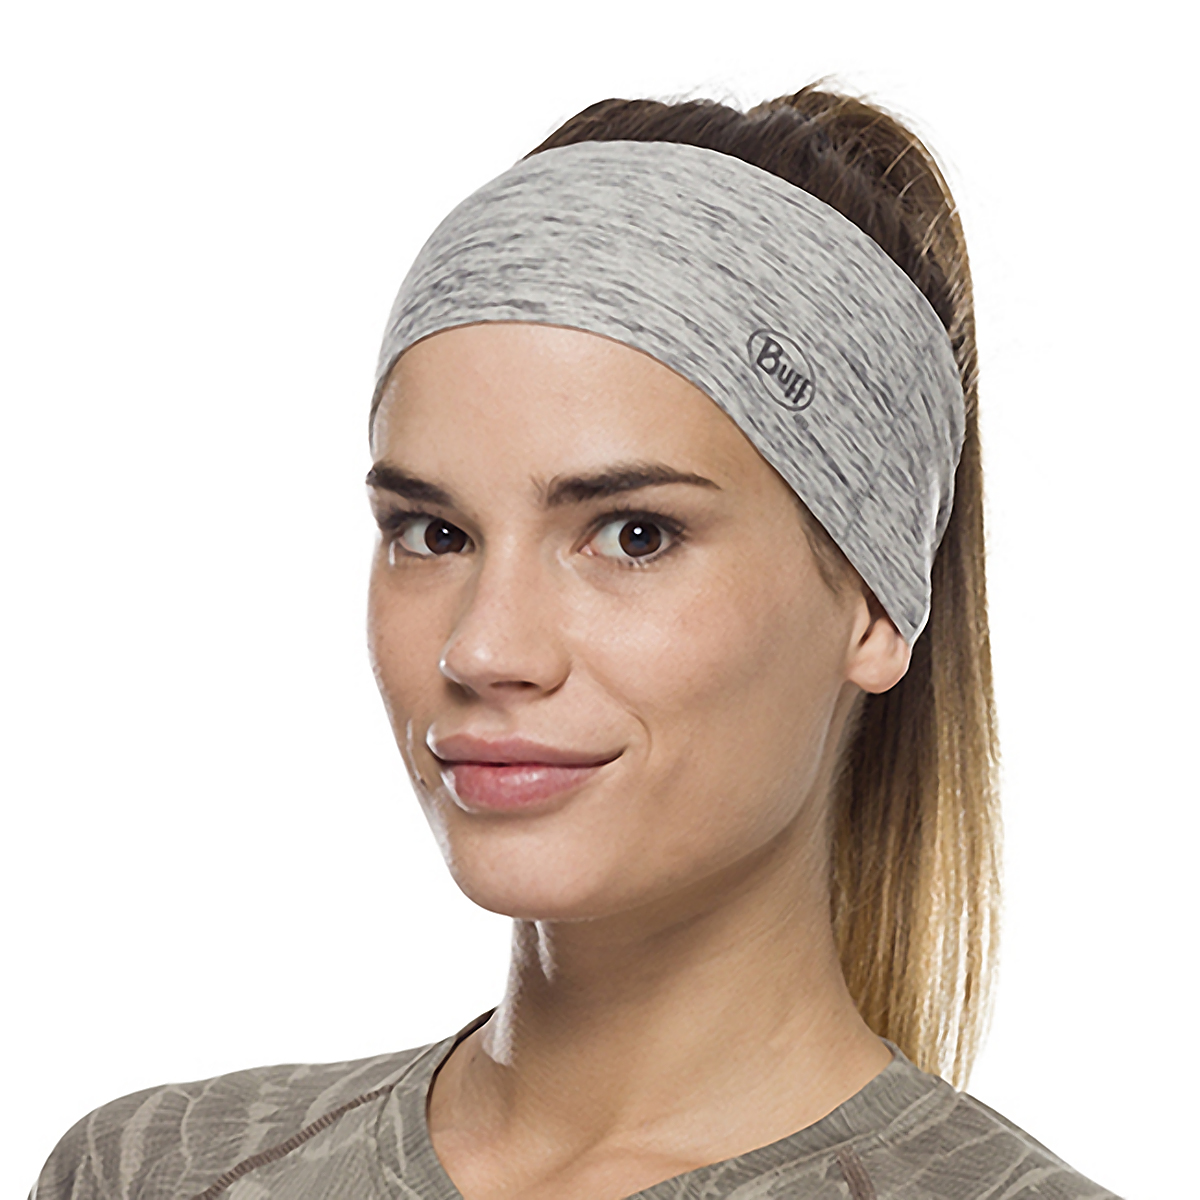 Buff Coolnet UV+ Tapered Headband - Color: Grey Heather, Grey Heather, large, image 2